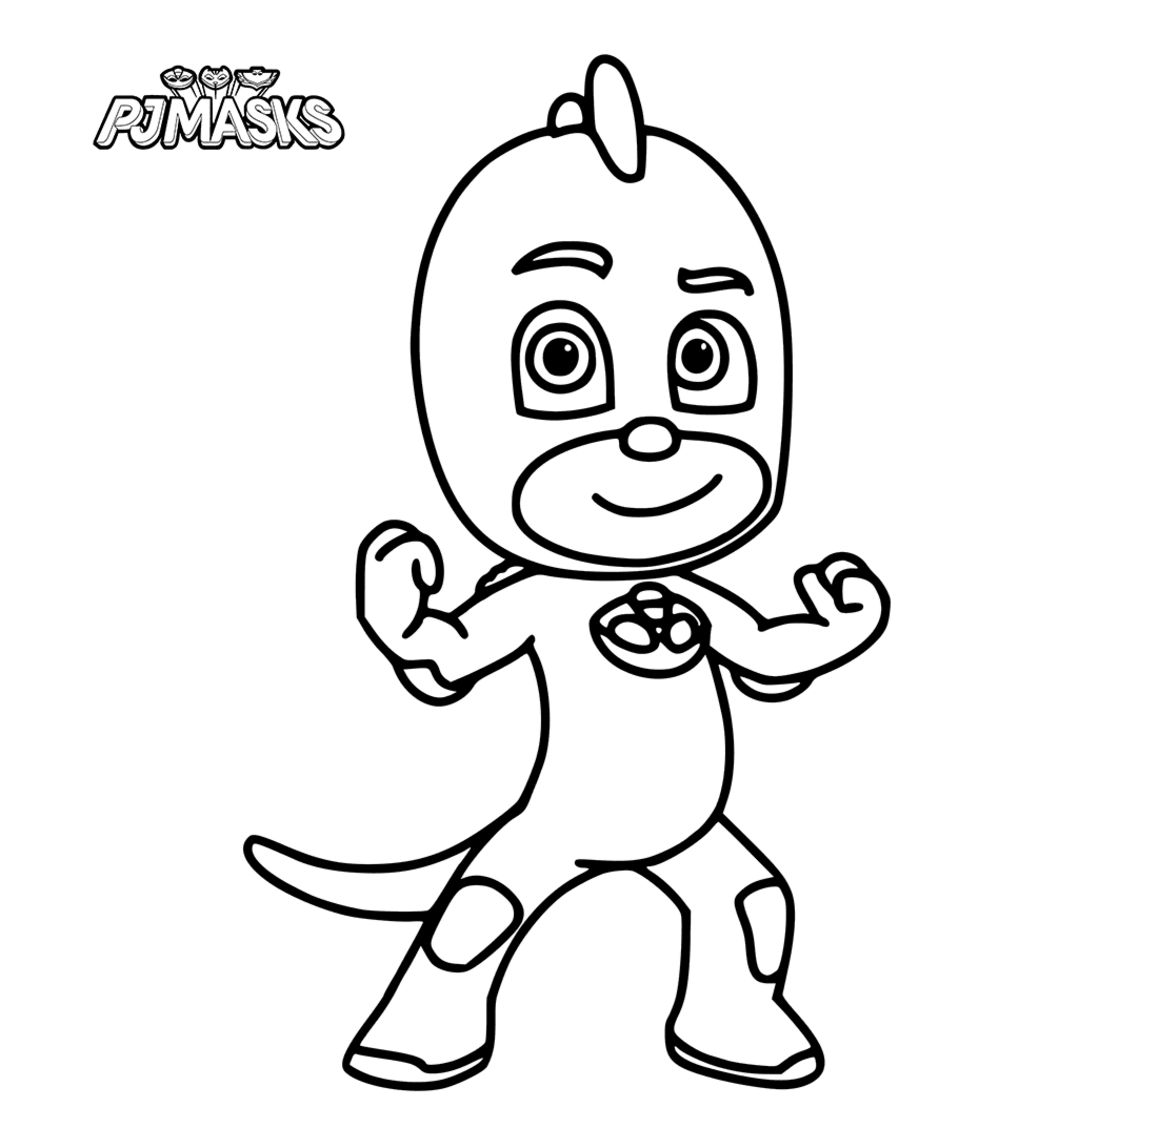 Finding Dory coloring pages ... - coloring pages to download and print for free - Coloring Pages